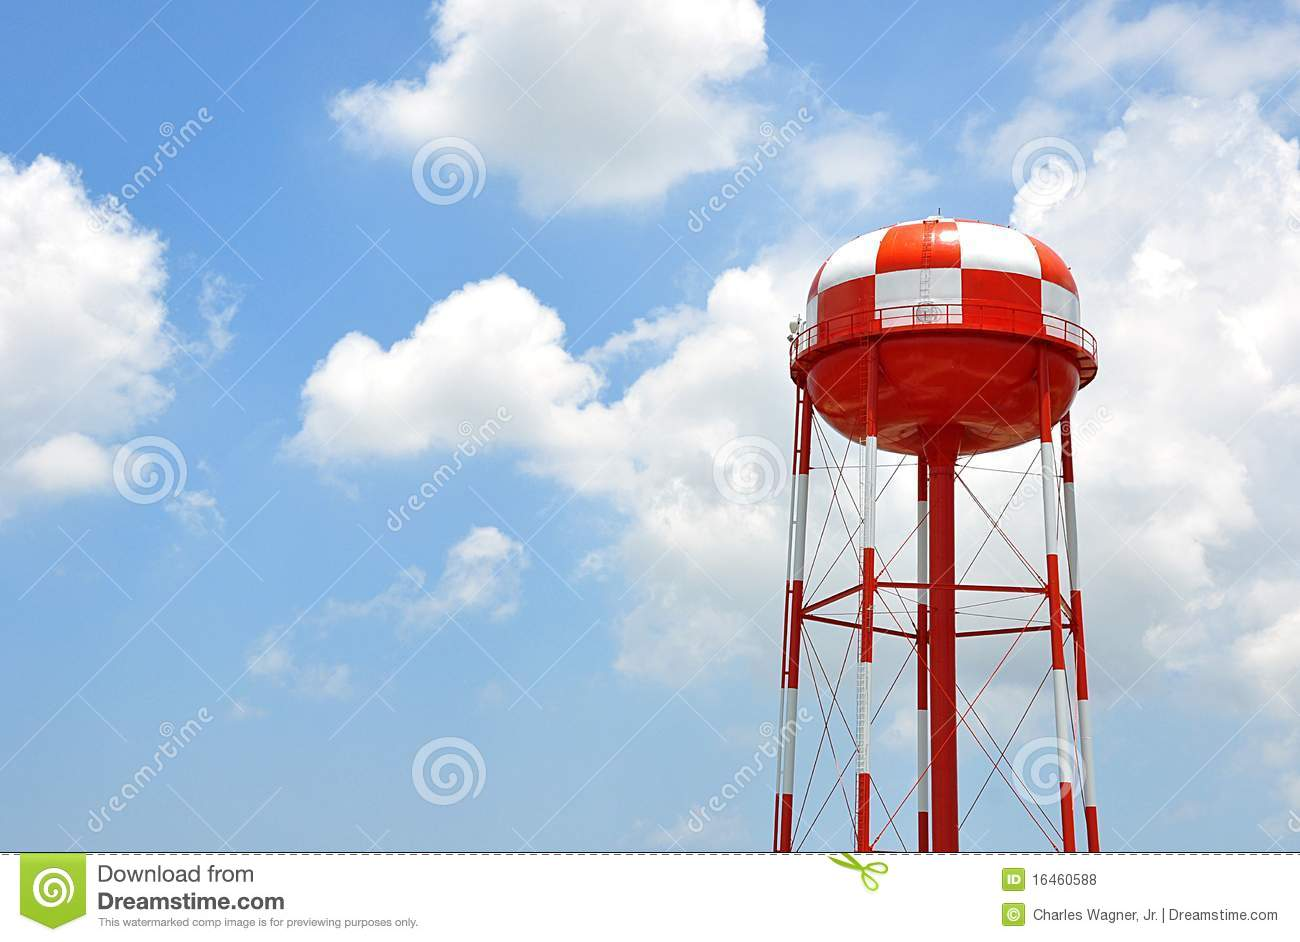 Water tank tower royalty free stock photos image 16460588